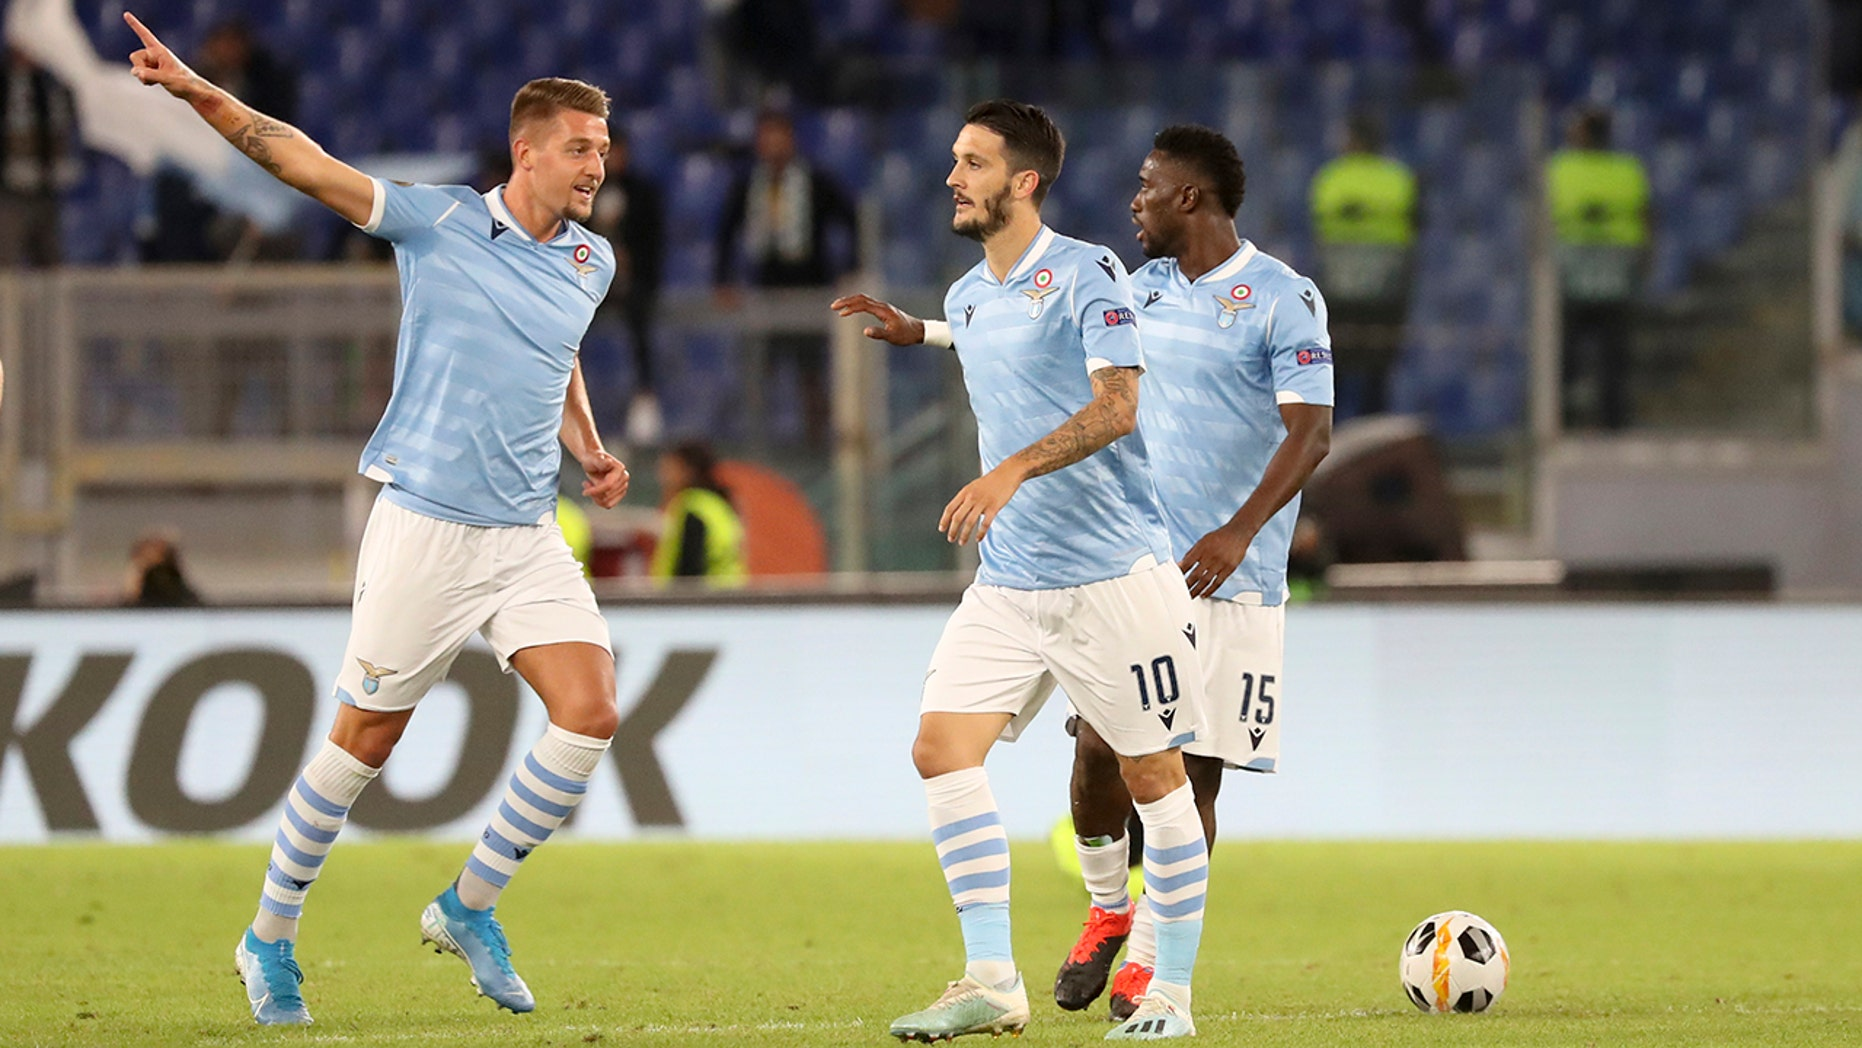 Lazio's Sergej Milinkovic-Savic, left, celebrates after scoring his side's first goal during the Europa League Group E soccer match between Lazio and Rennes, at Rome's Olympic Stadium, Thursday, Oct. 3, 2019. (AP Photo/Alessandra Tarantino)